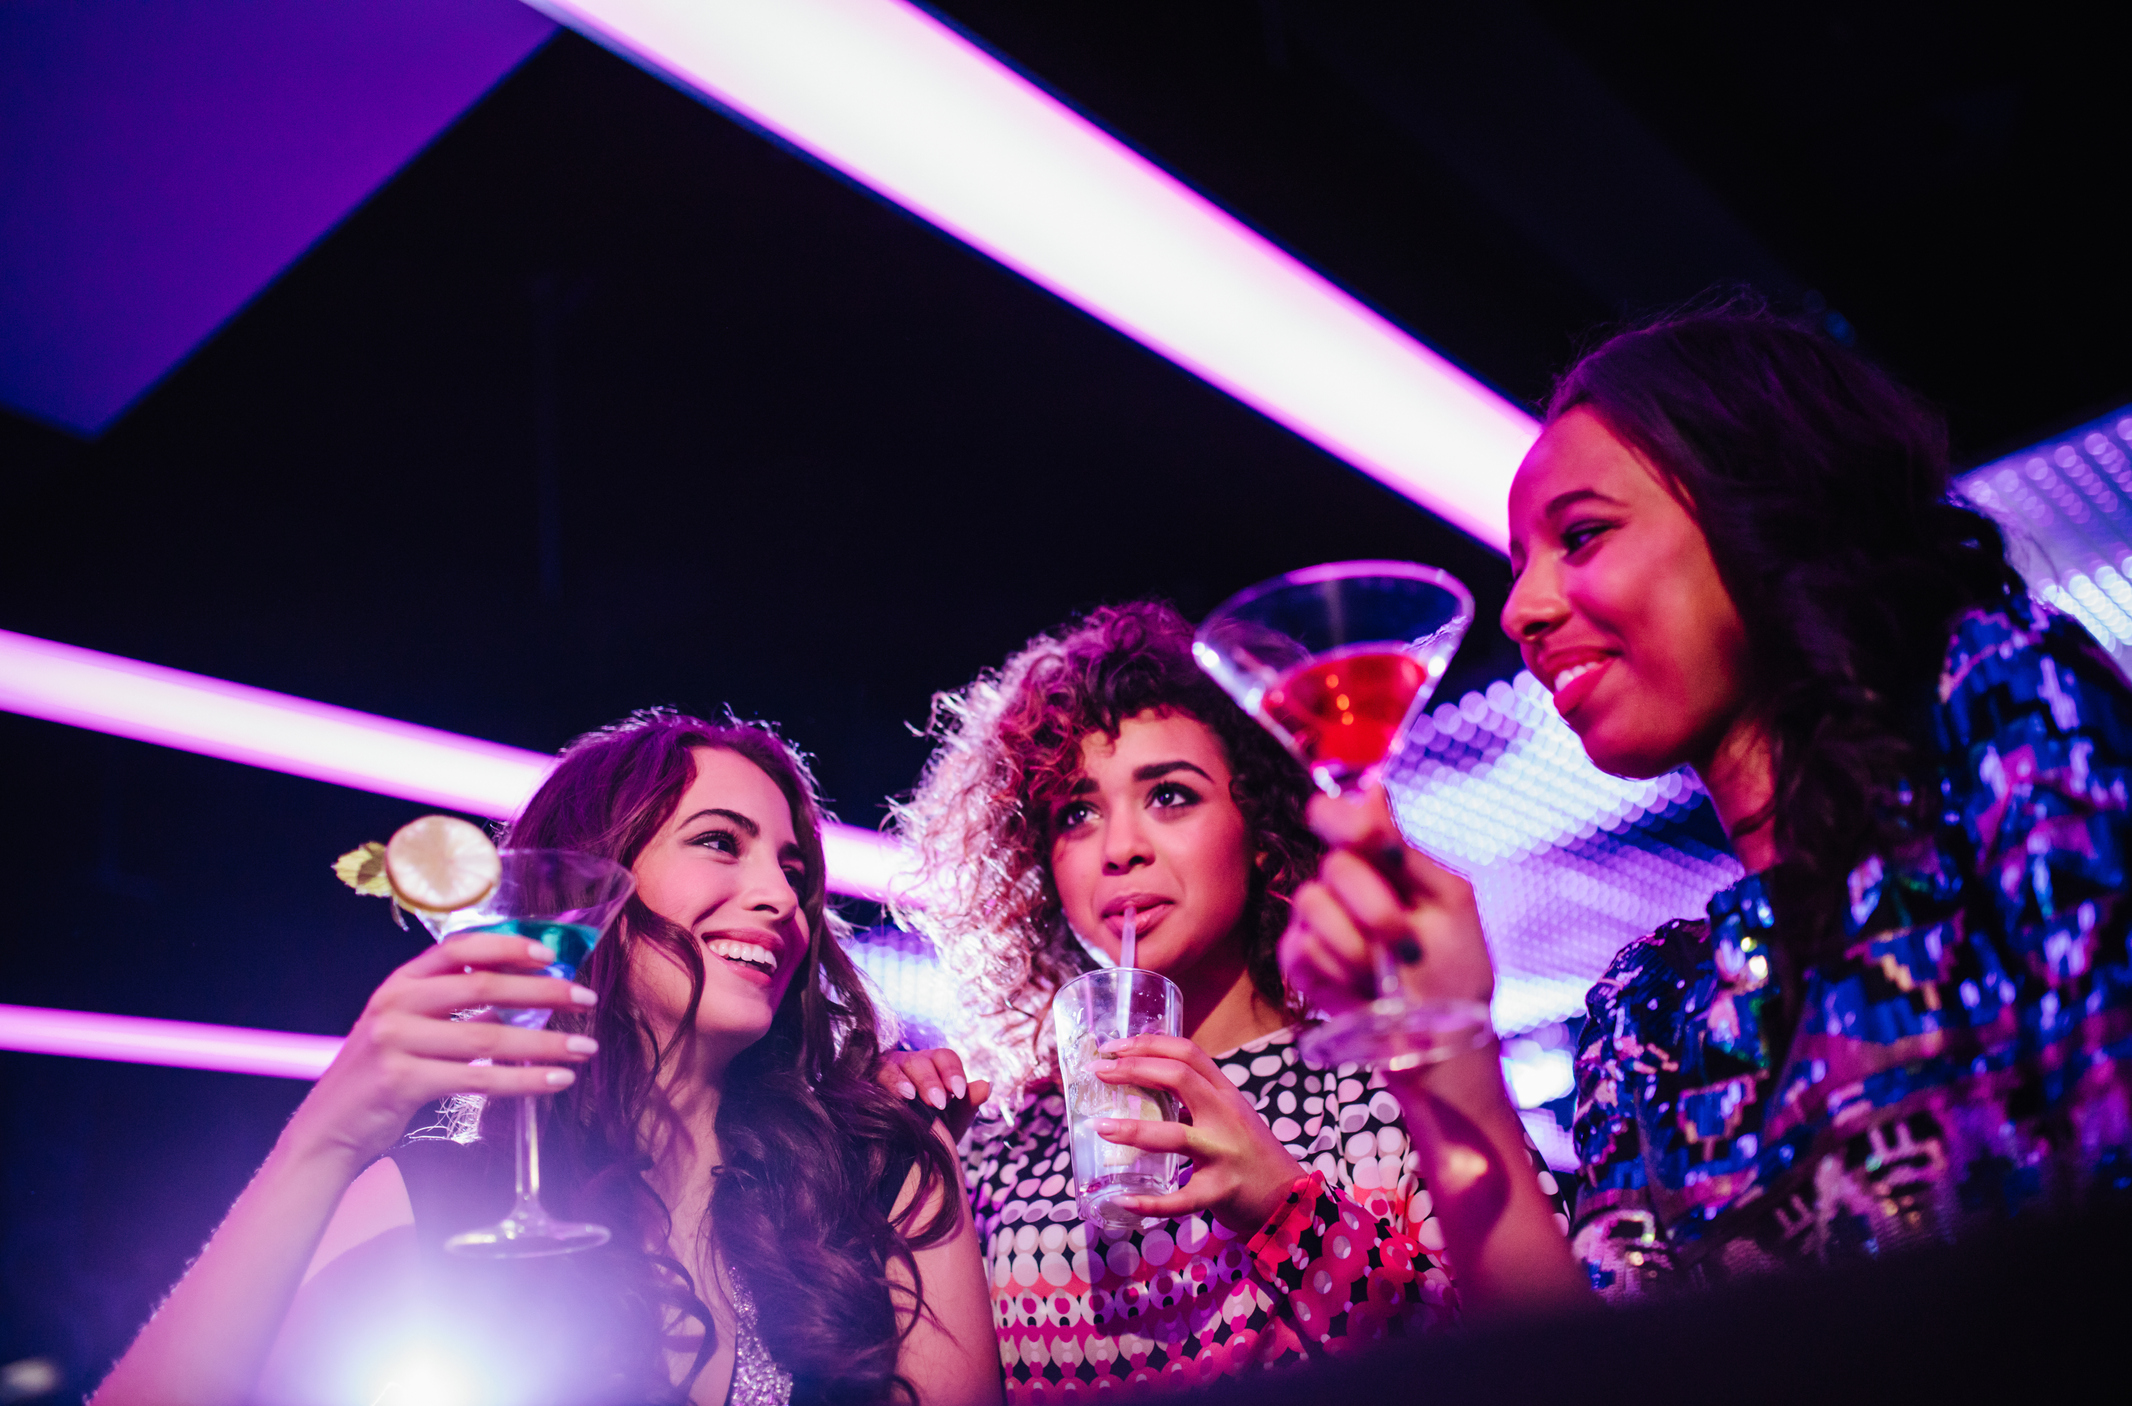 Young friends enjoying party with drinks at the club.